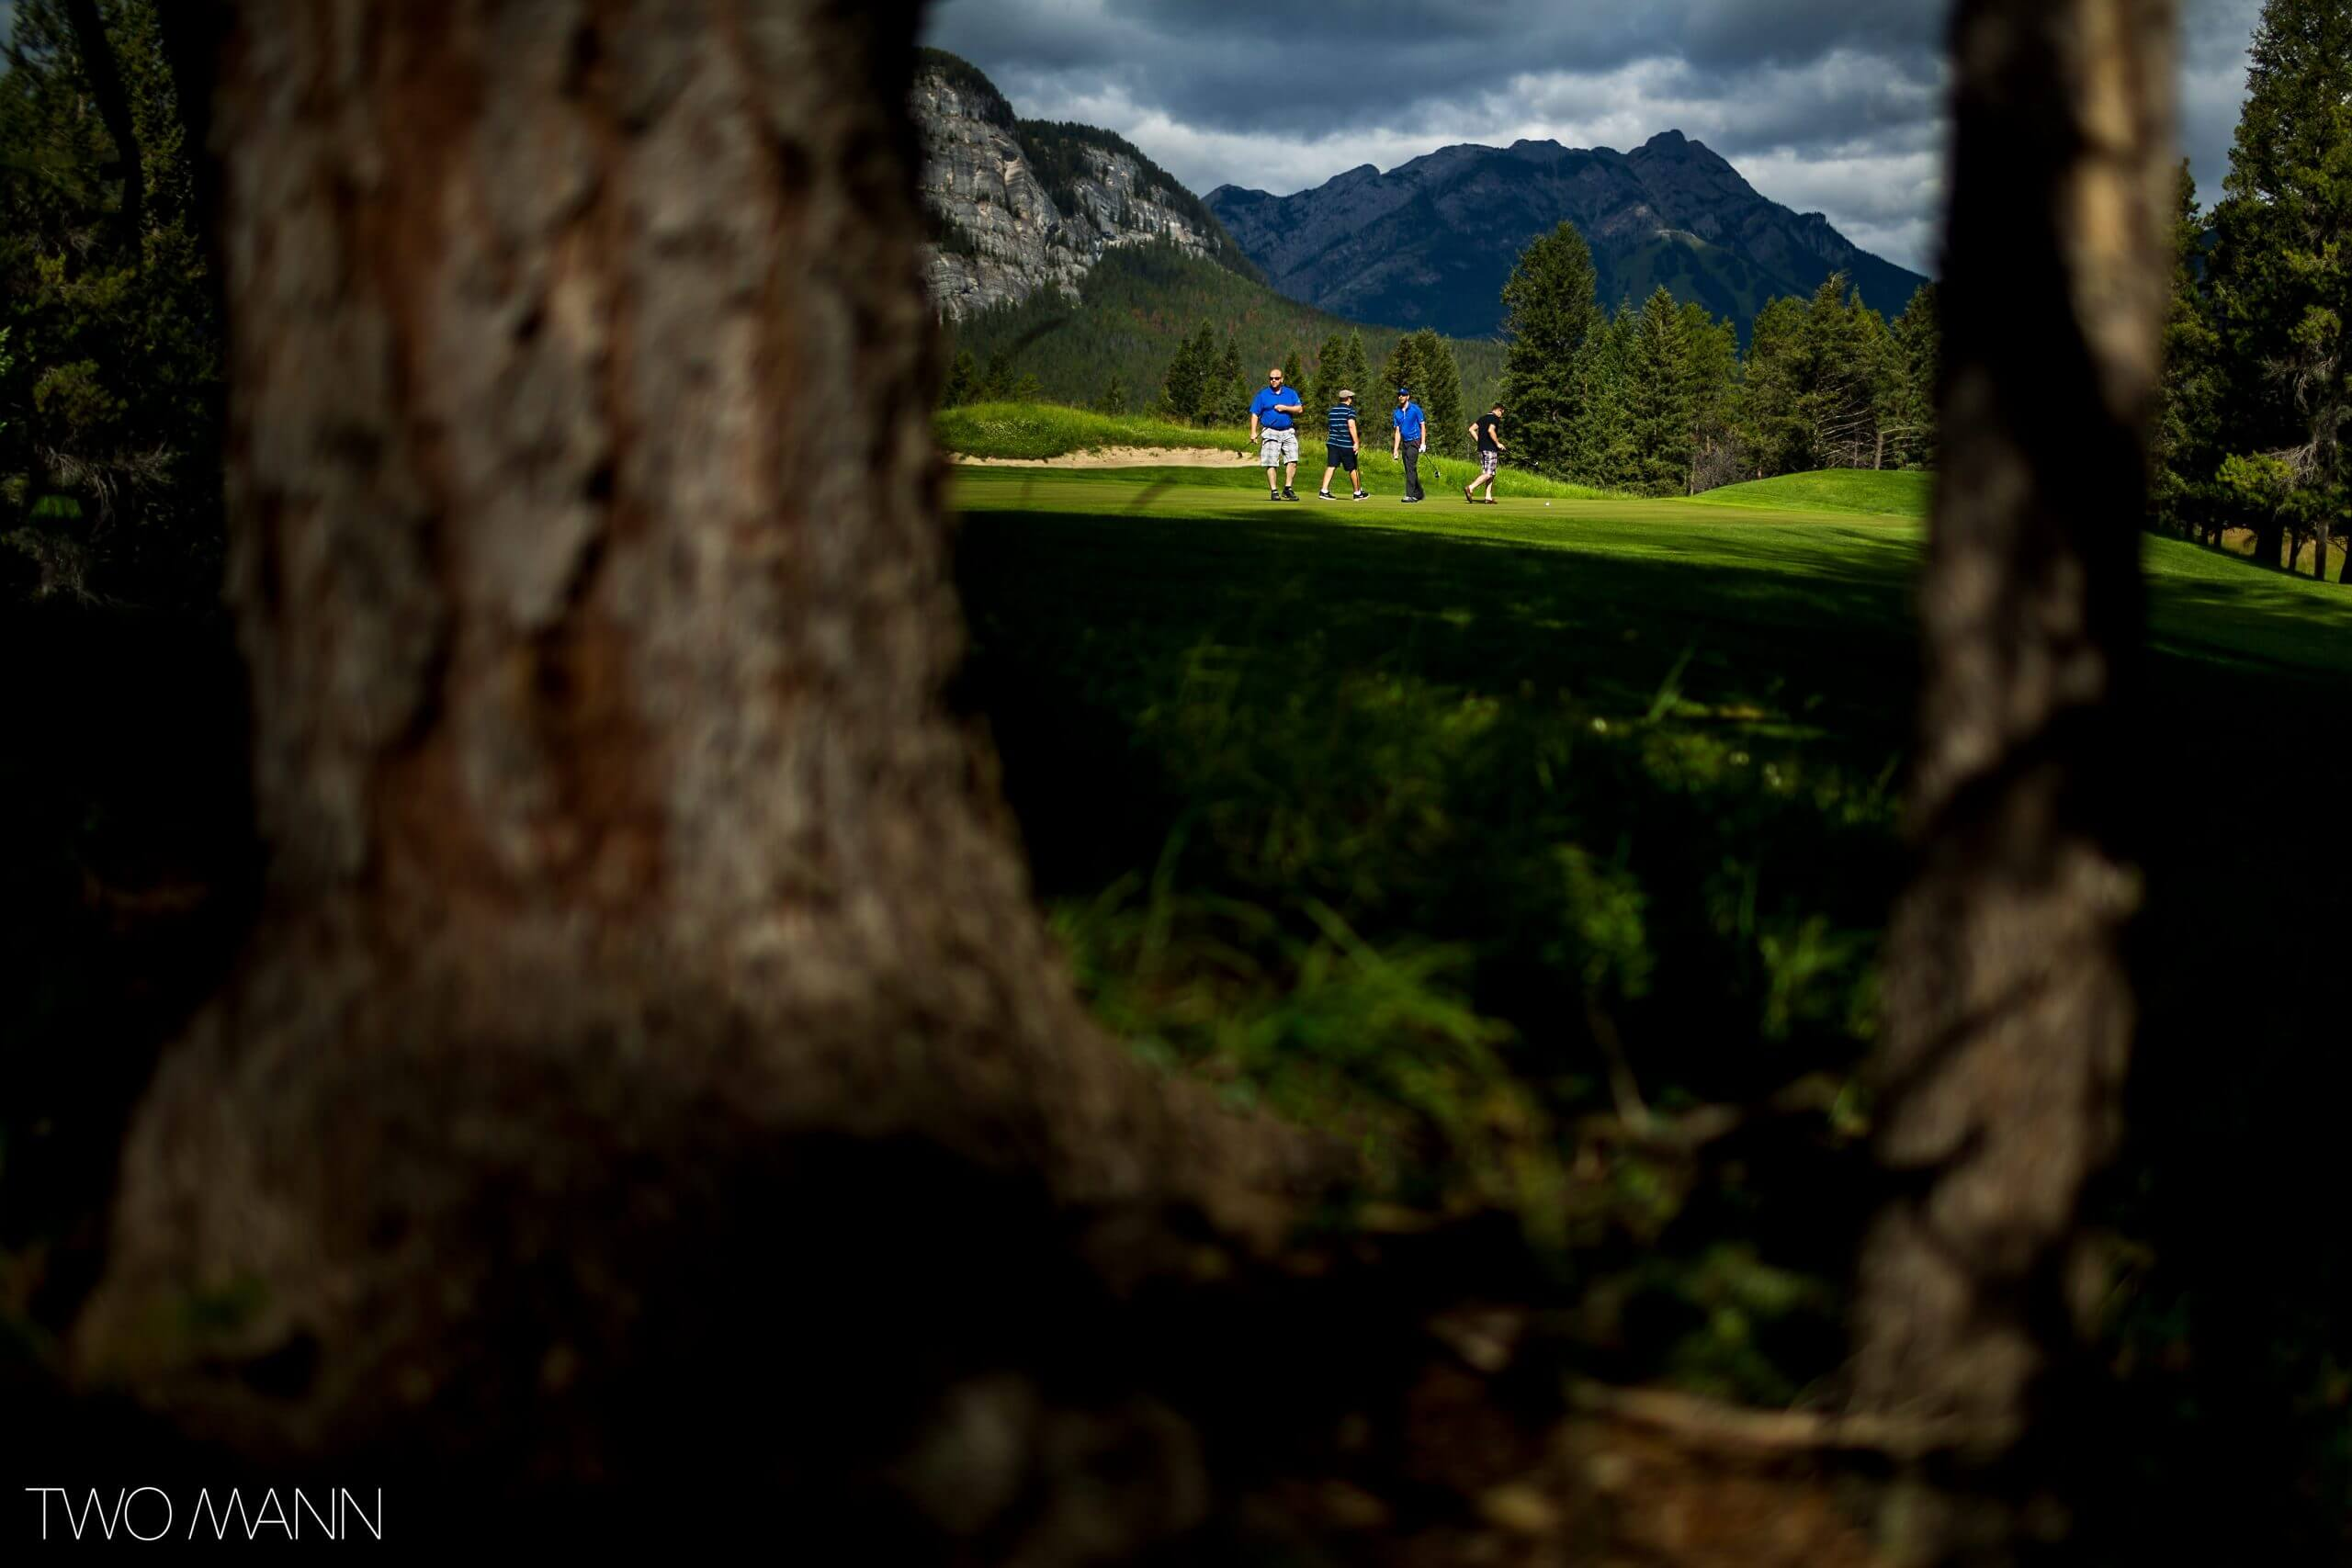 guests playing on the fairmont banff springs golf course